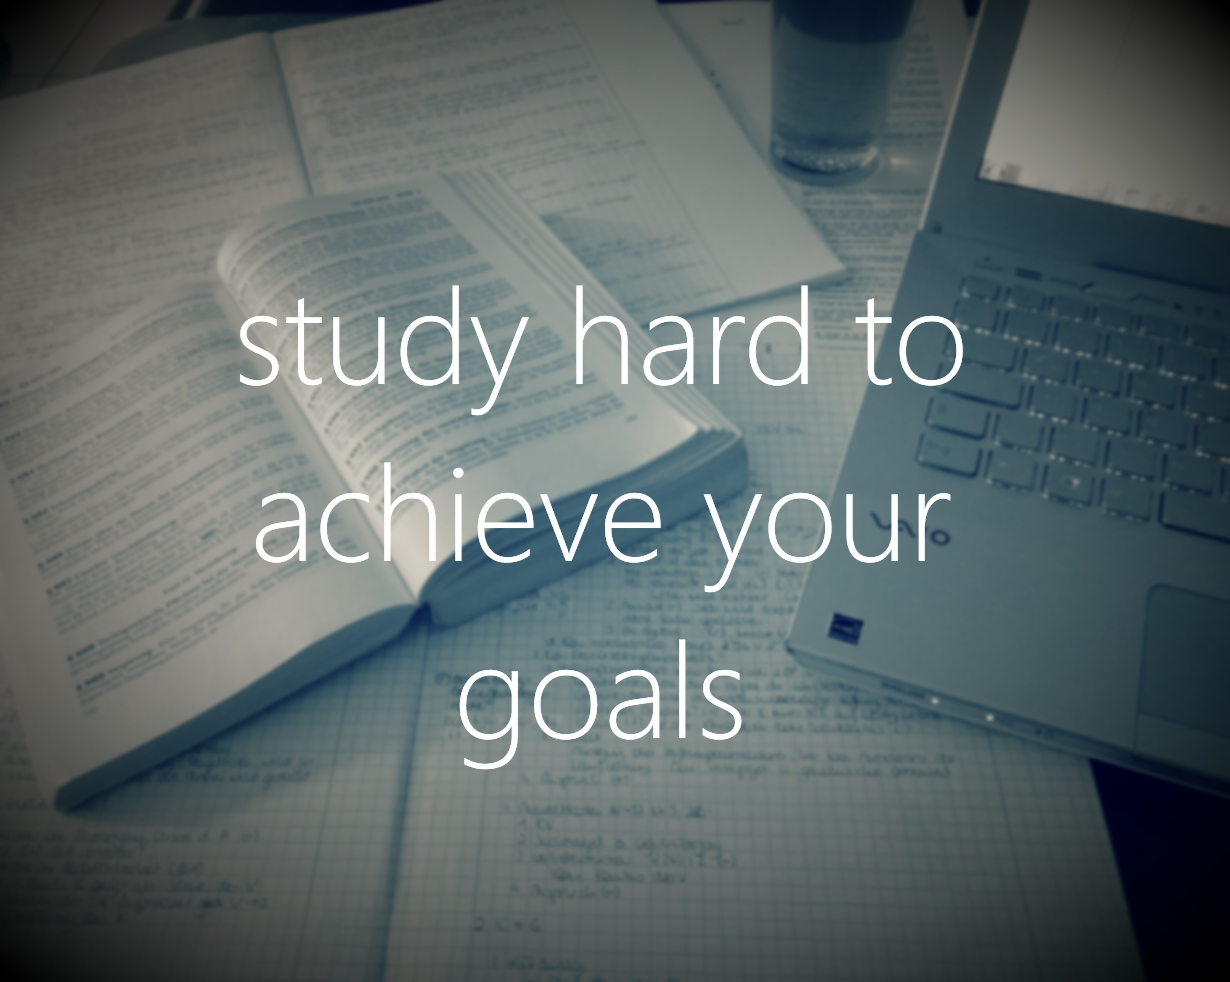 Quotes about Boring studying (28 quotes)